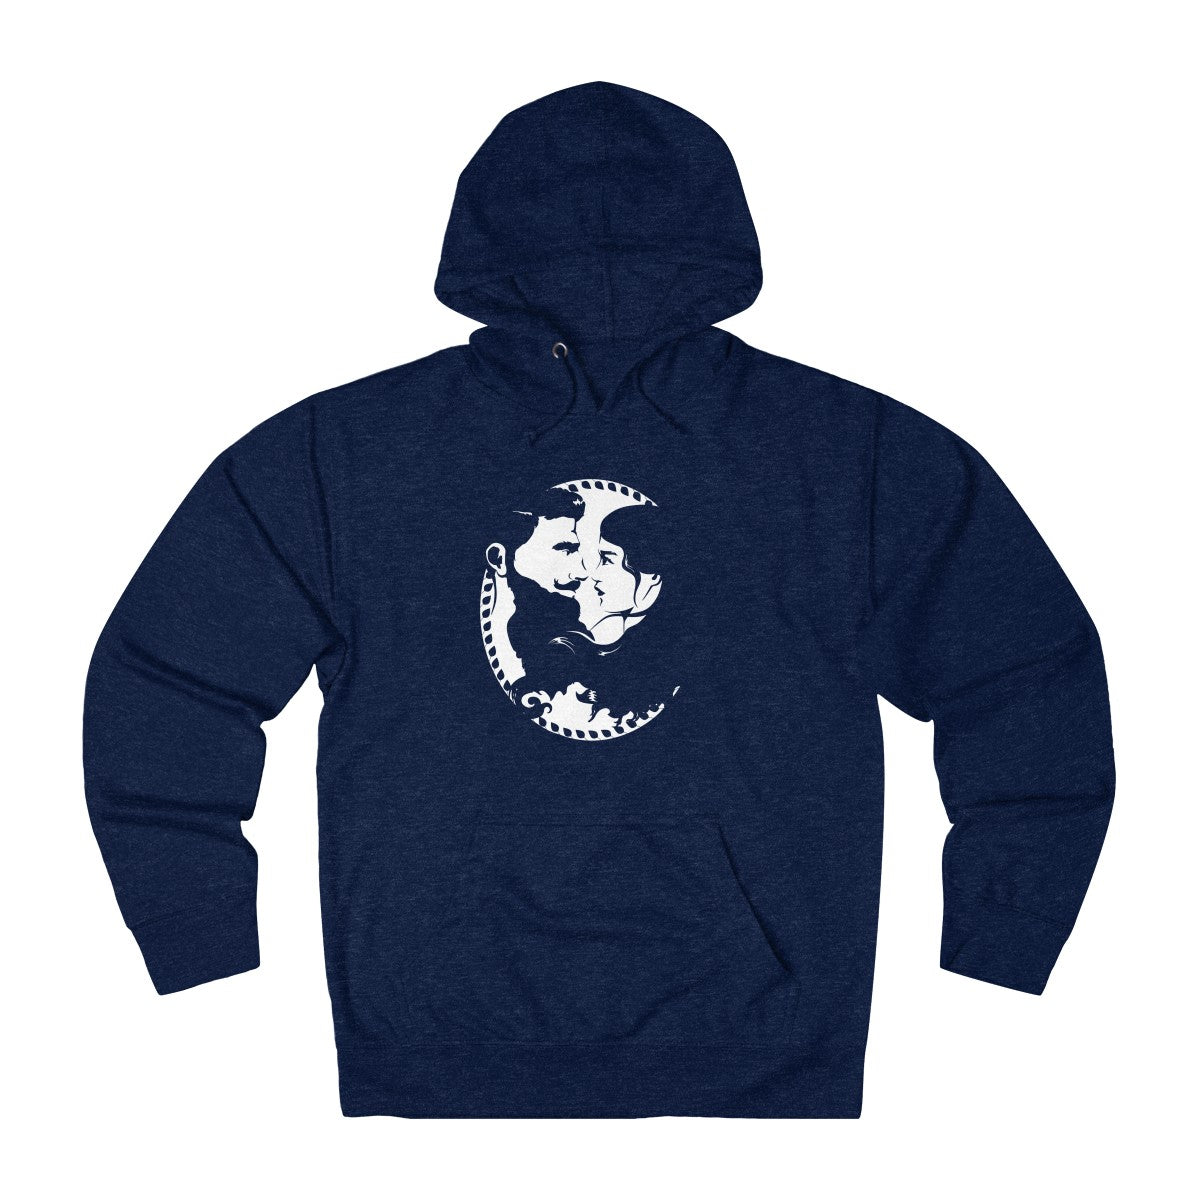 Unisex French Terry Hoodie - Beard and Lady